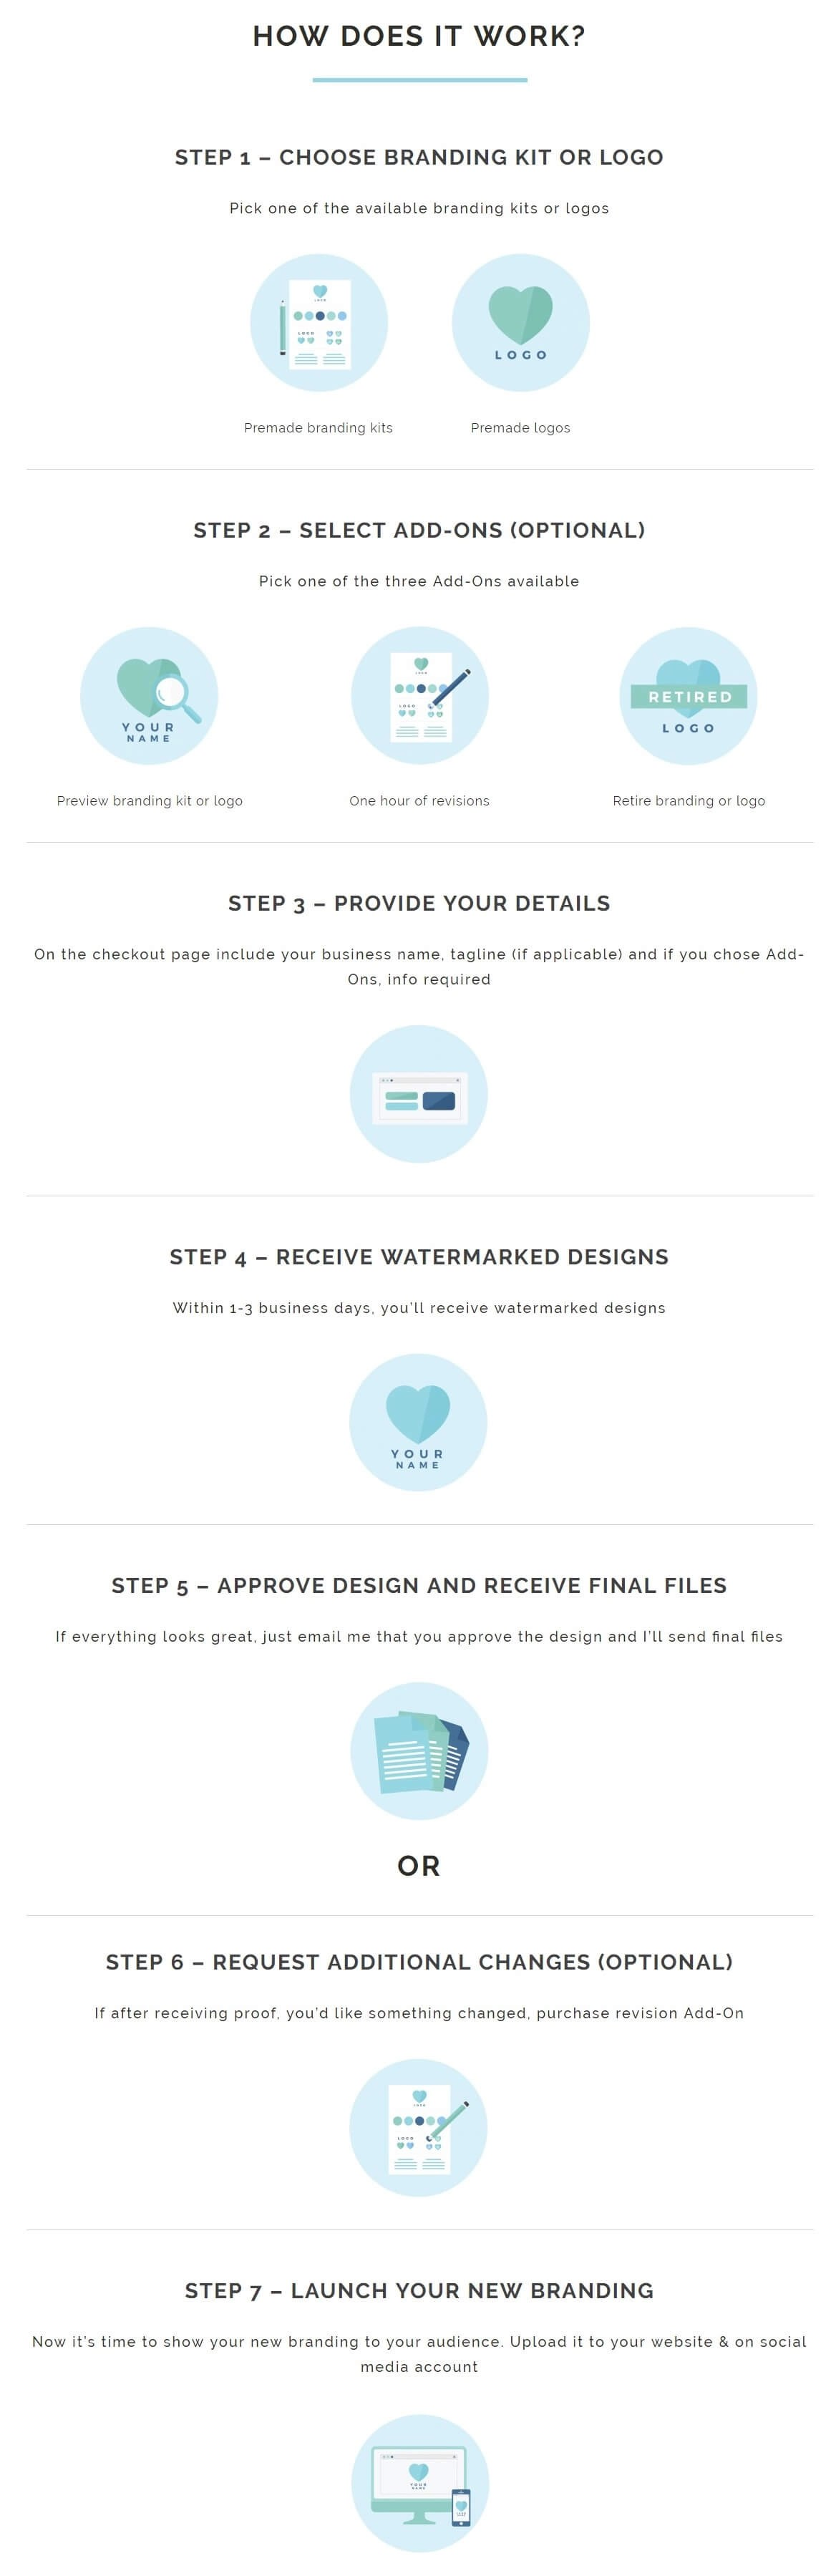 MintSwift Shop Process – How Does It Work From Choosing Branding Kit Or Logo To Launching It On Your Website And Social Media